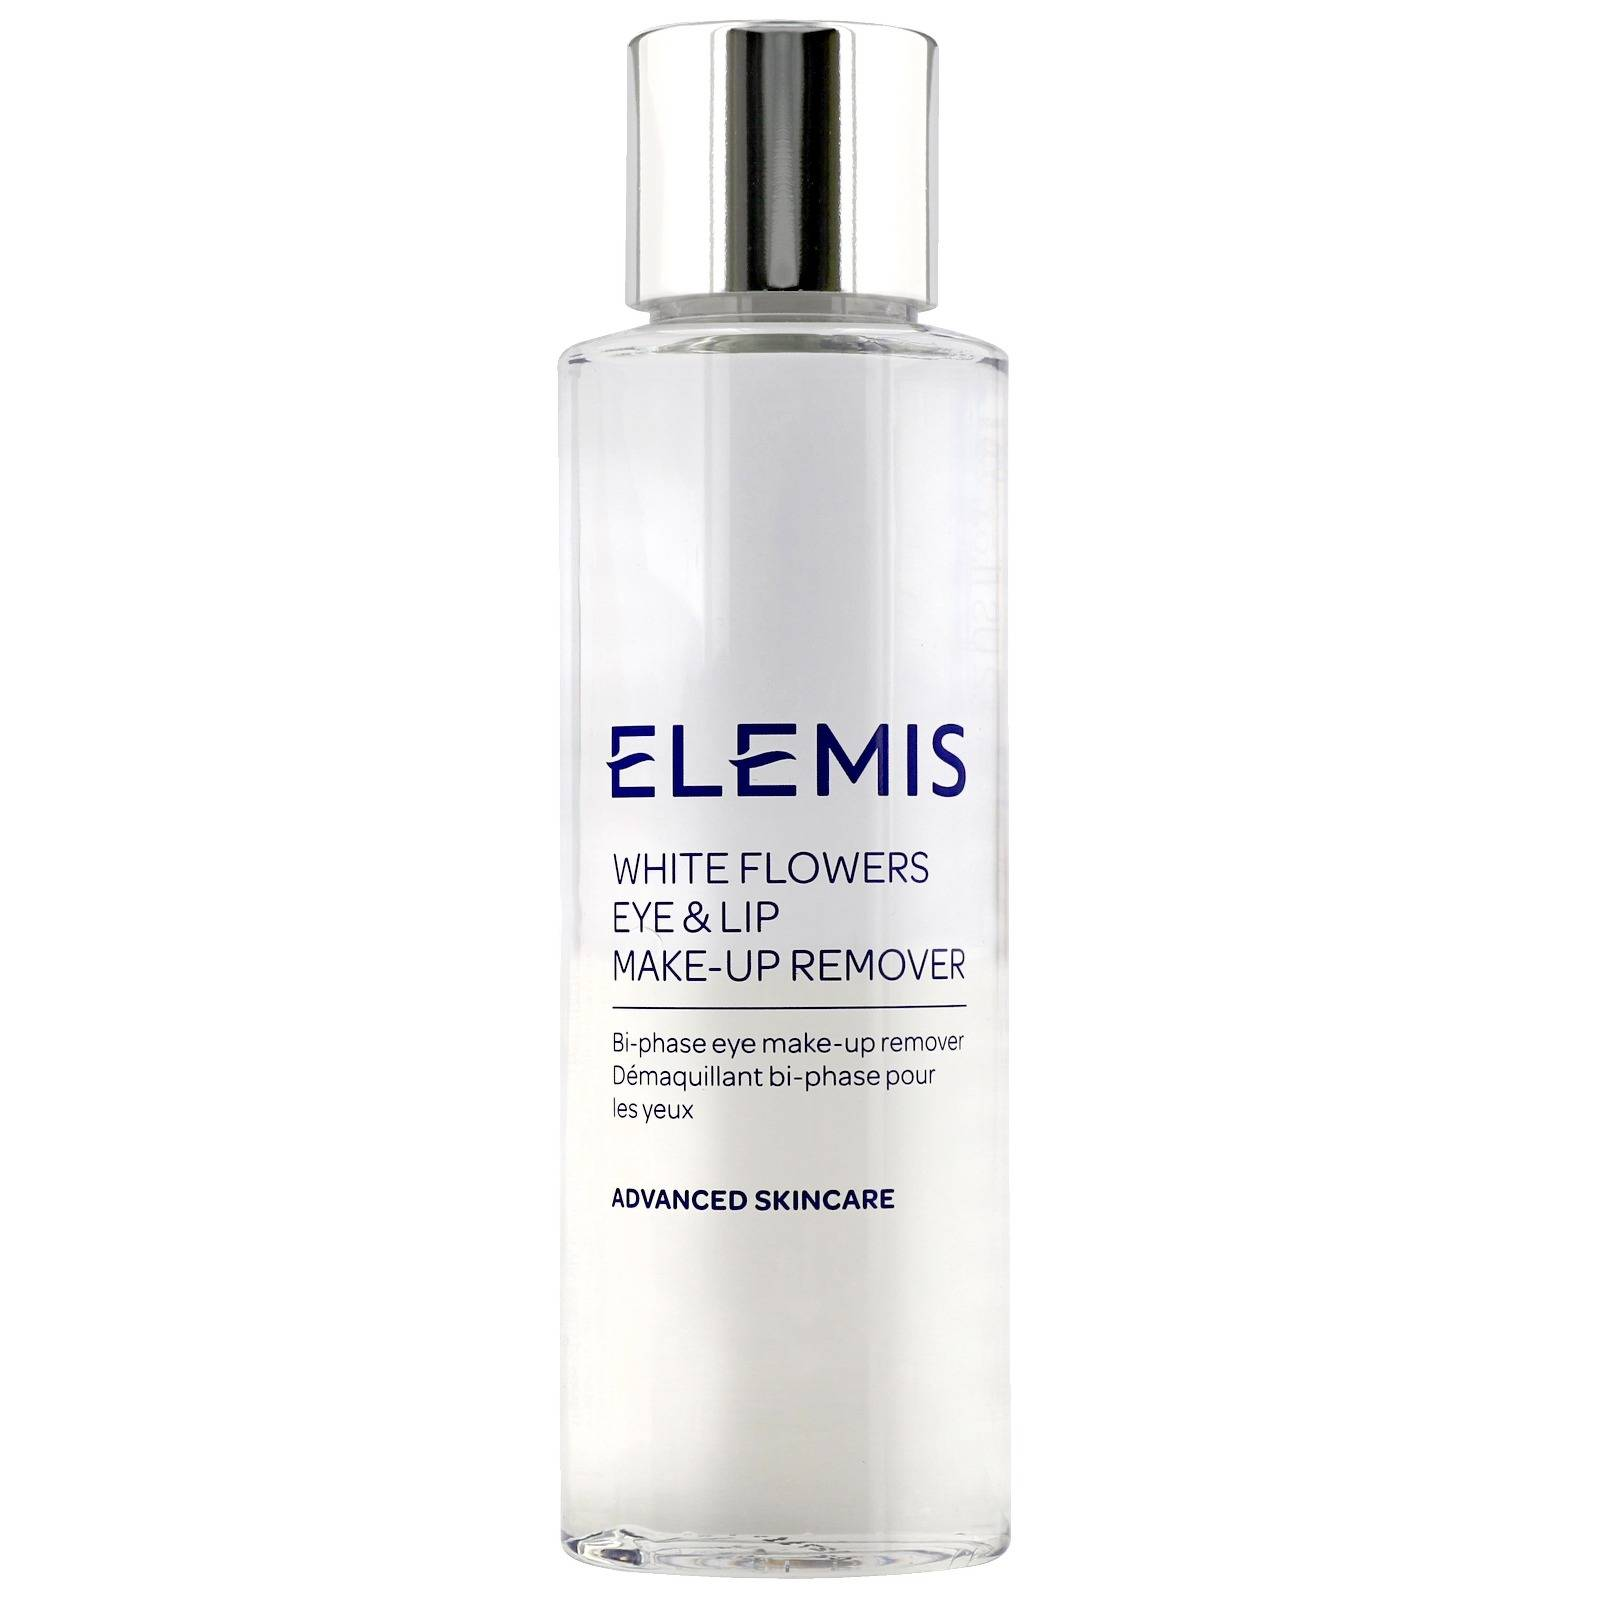 Elemis Advanced Skincare Bianco fiori Eye & Lip Makeup Remover 125ml / 4.2 oz.